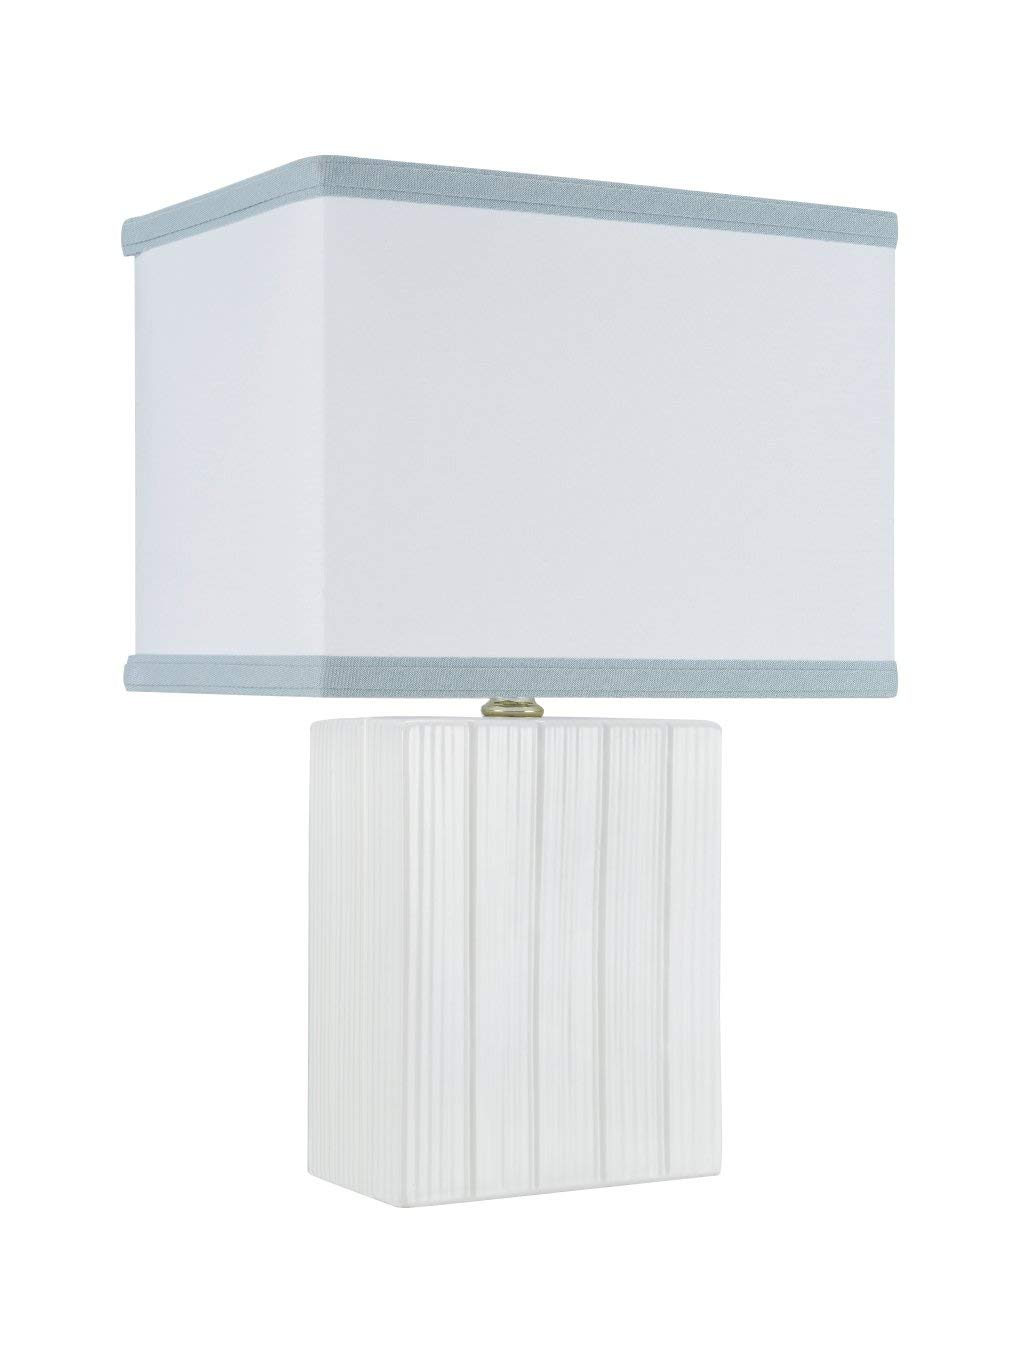 """Aspen Creative 40089 15 1/4"""" High Transitional Ceramic Table Finish with Hardback Rectangle Shaped Lamp Shade in Off White, 10"""" + 7"""" Wide 7"""", Ivory"""